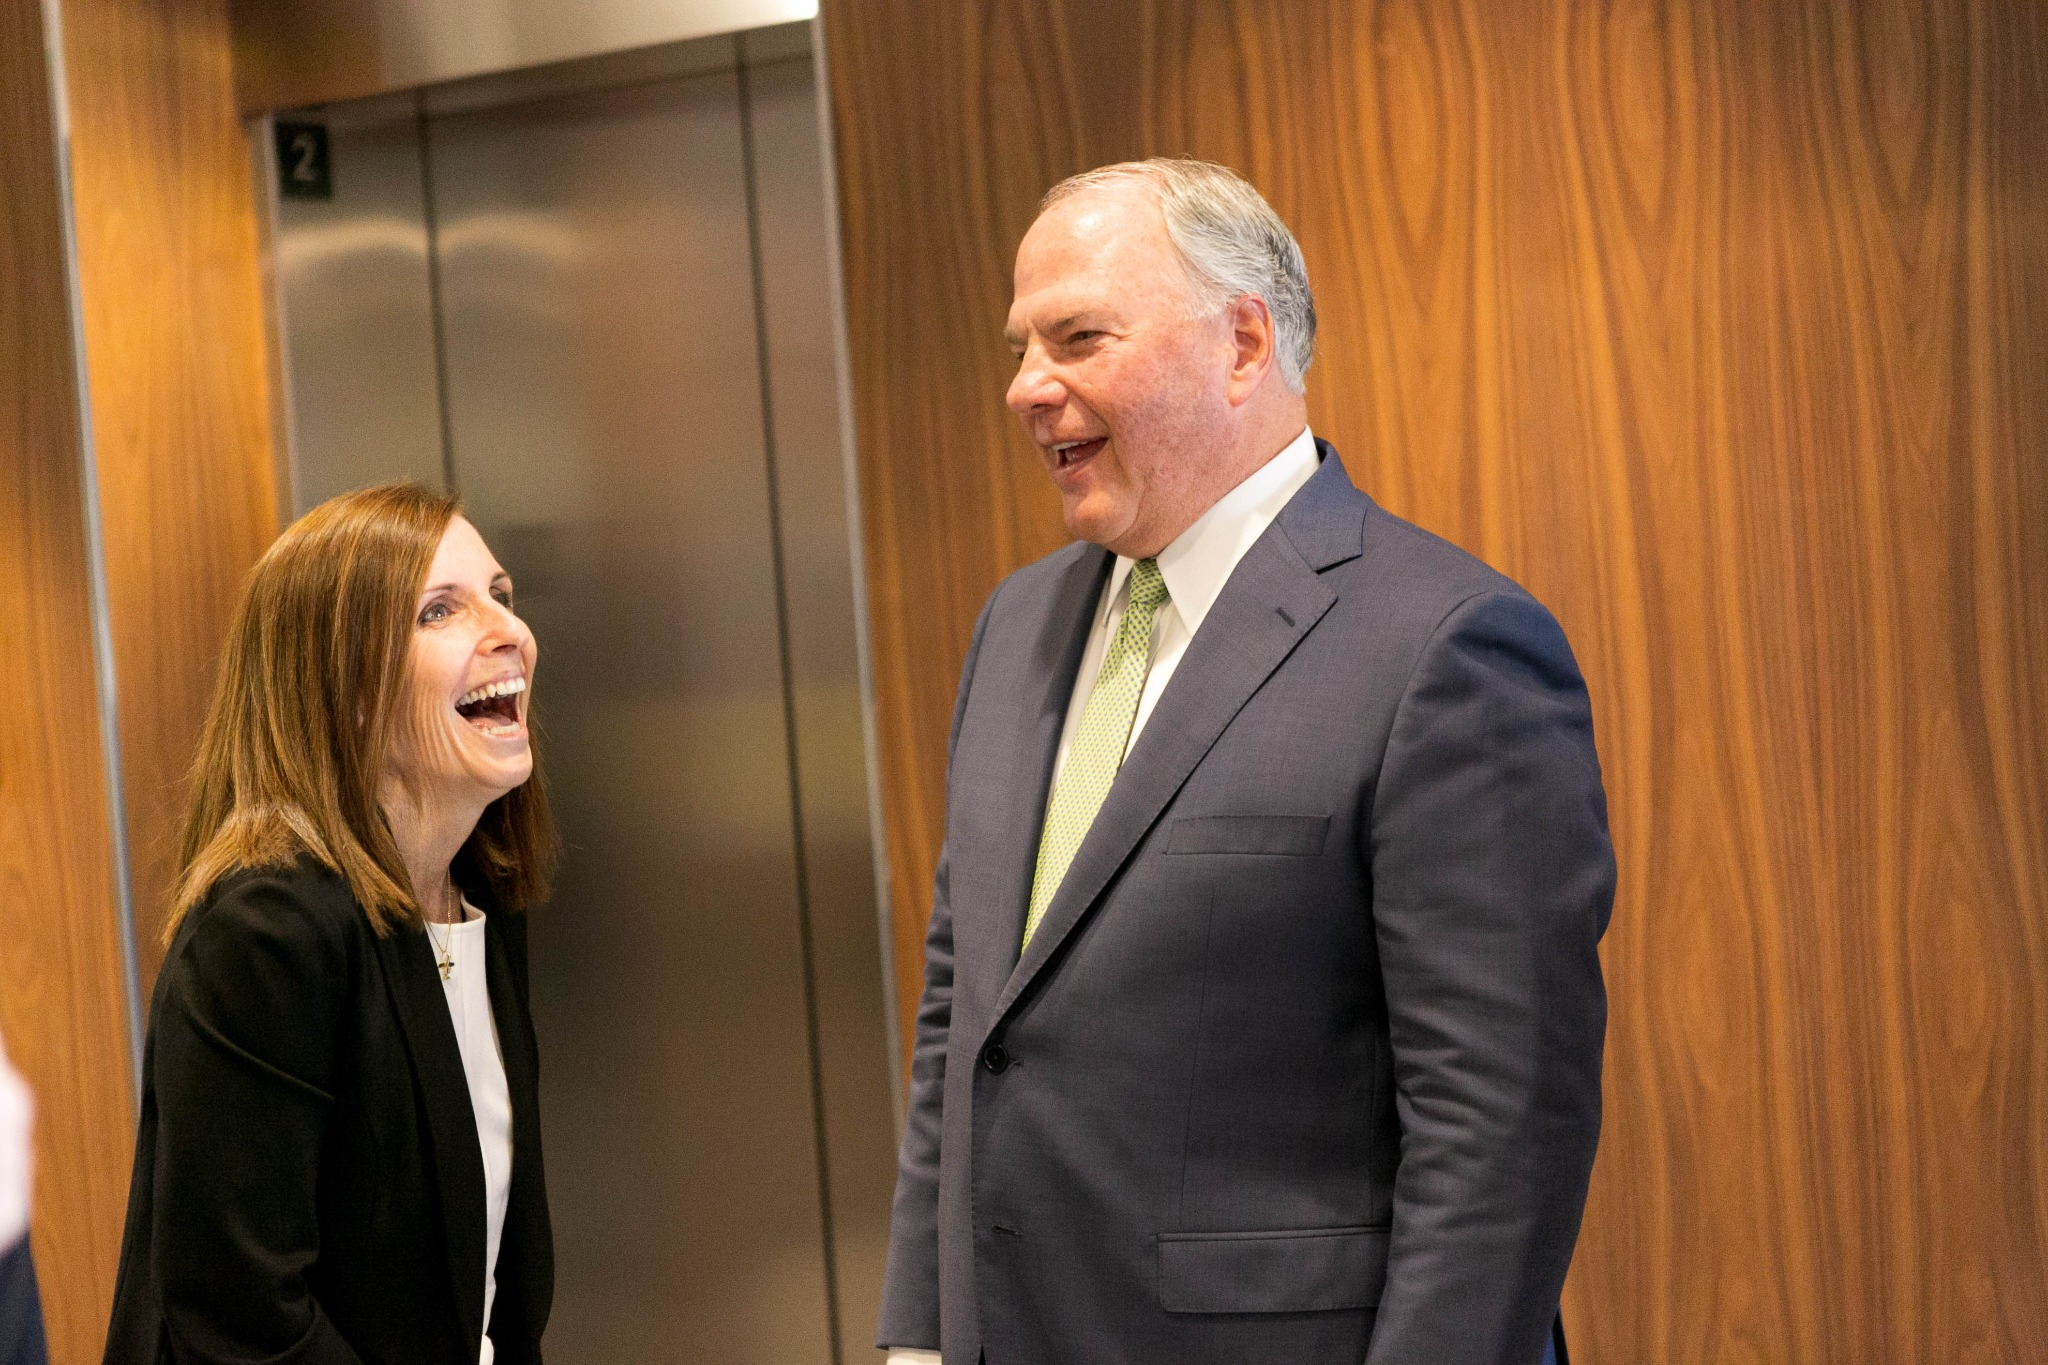 Elder Ronald A. Rasband of the Quorum of the Twelve Apostles has a light moment with Arizona's newest senator, Martha McSally, during a visit to her office on Friday, October 18, 2019.